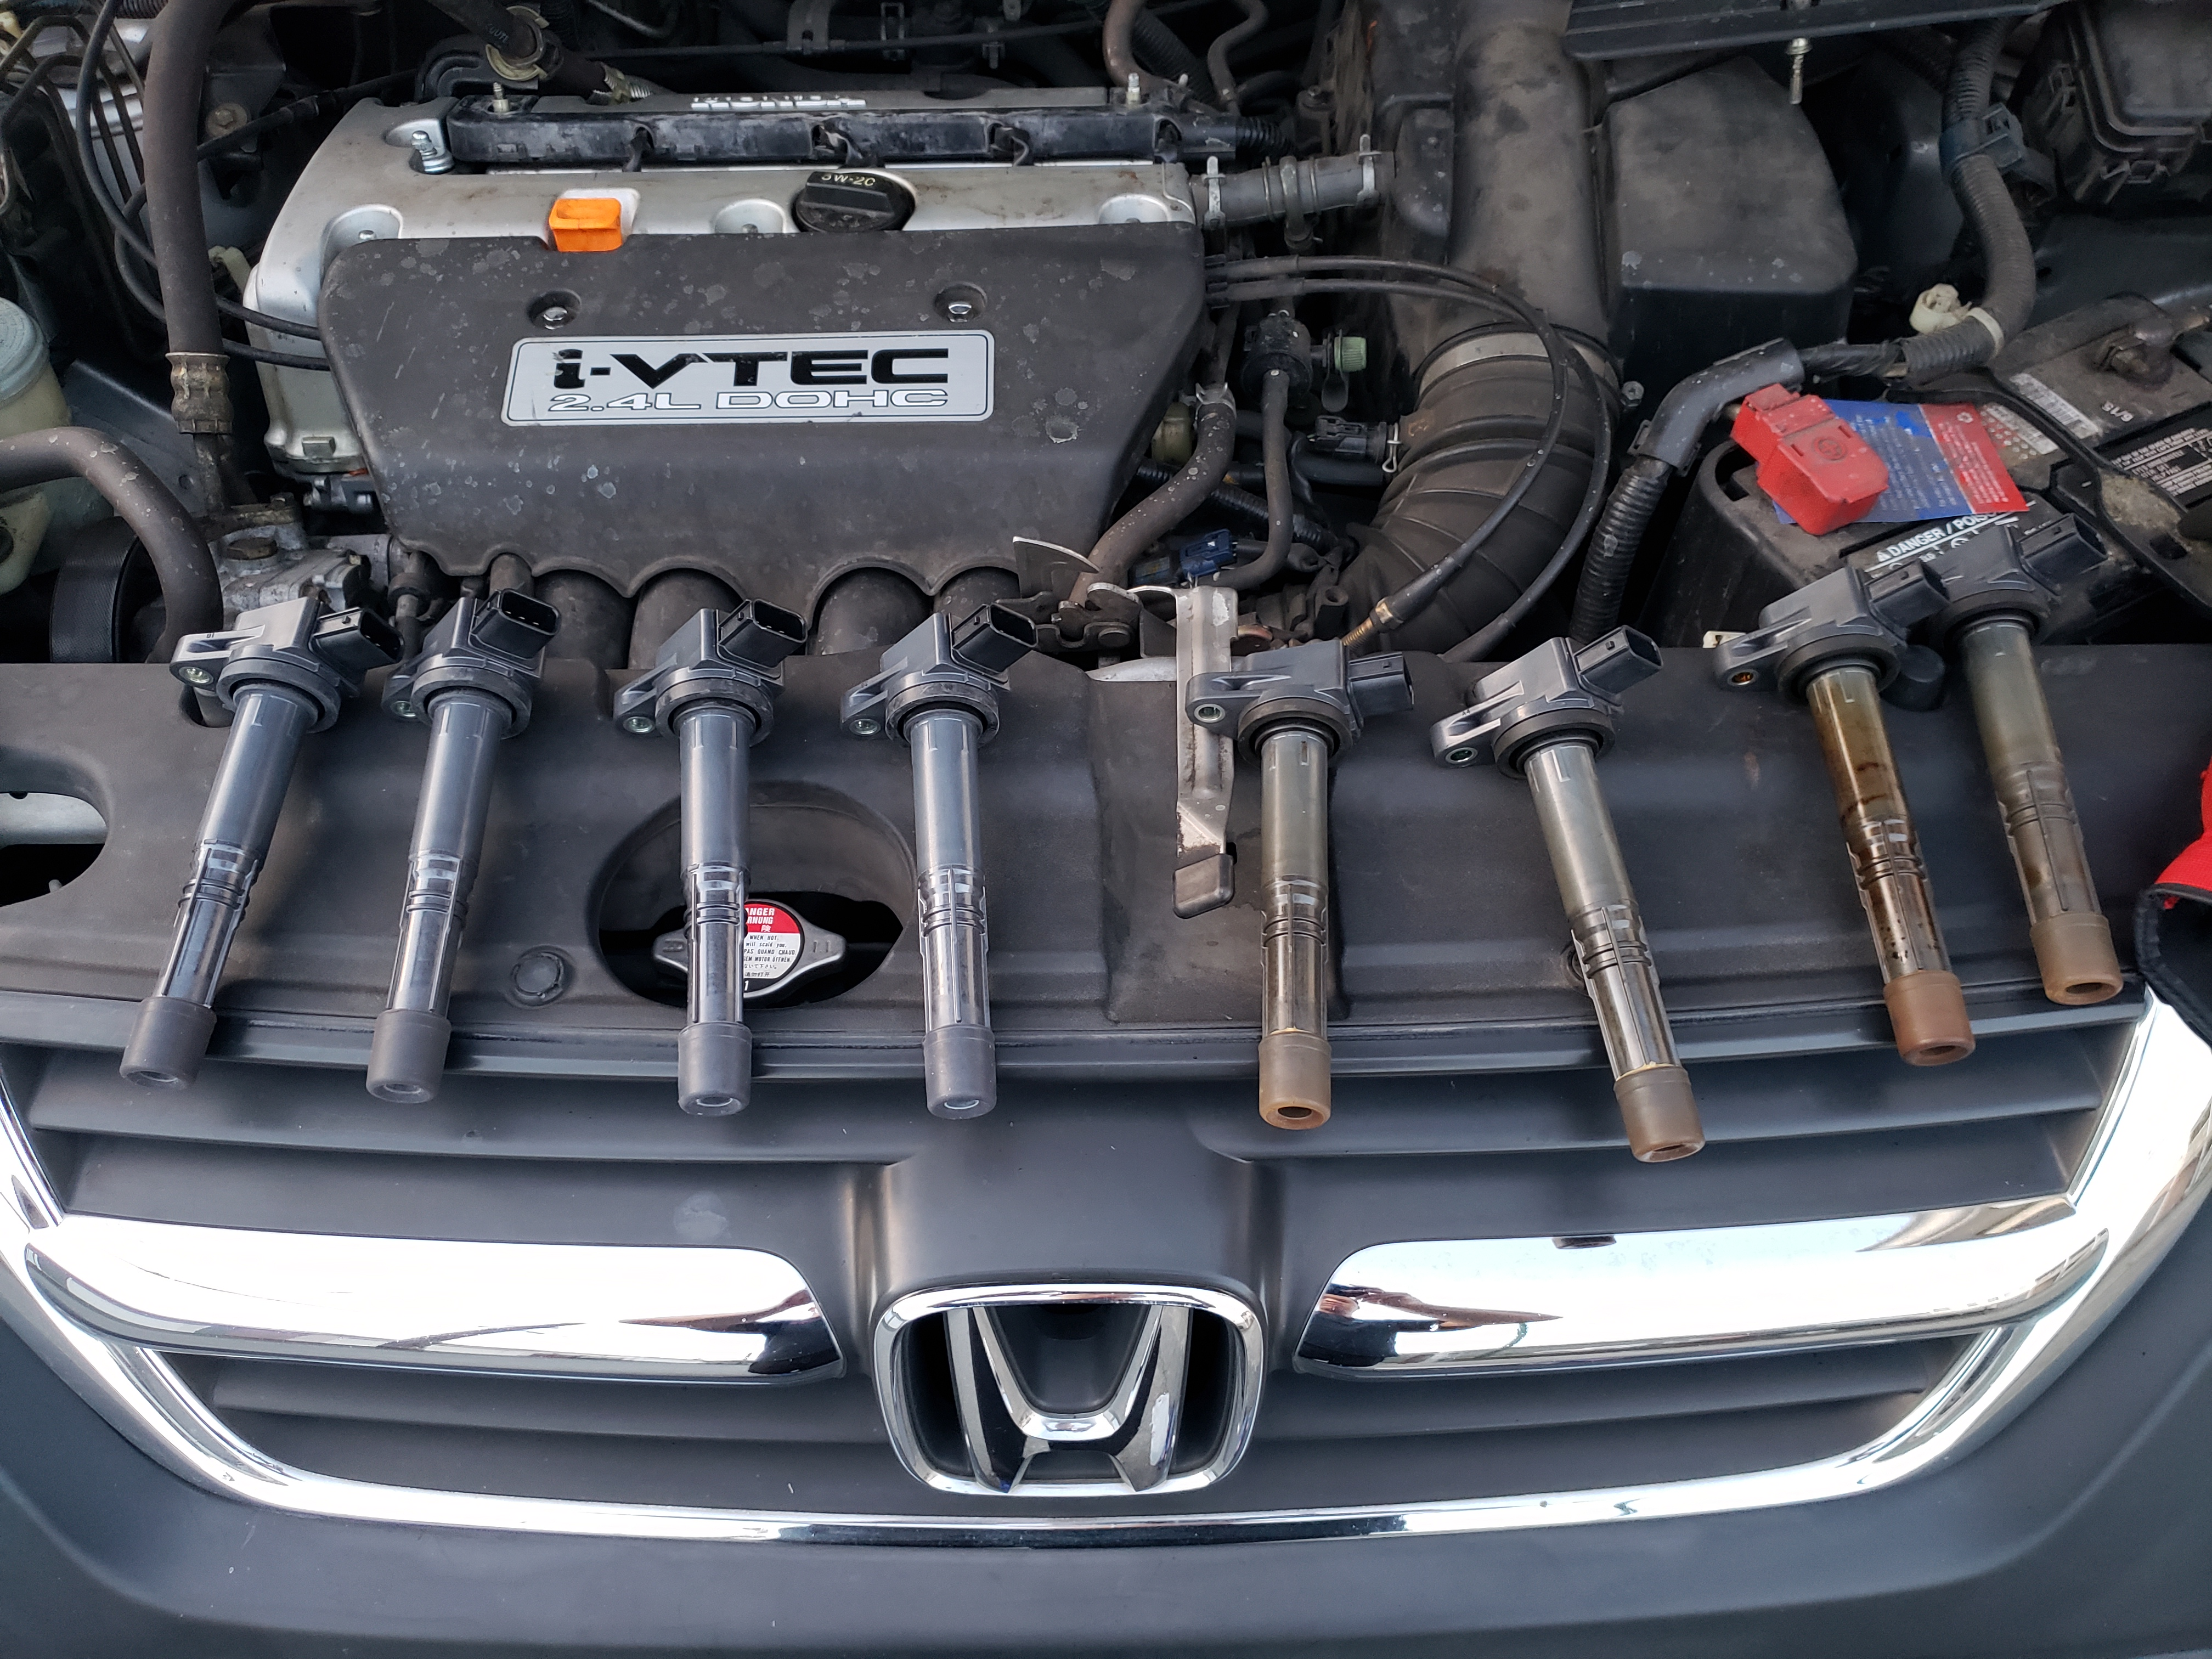 new ignition coils (left) vs. old ignition coils (right)